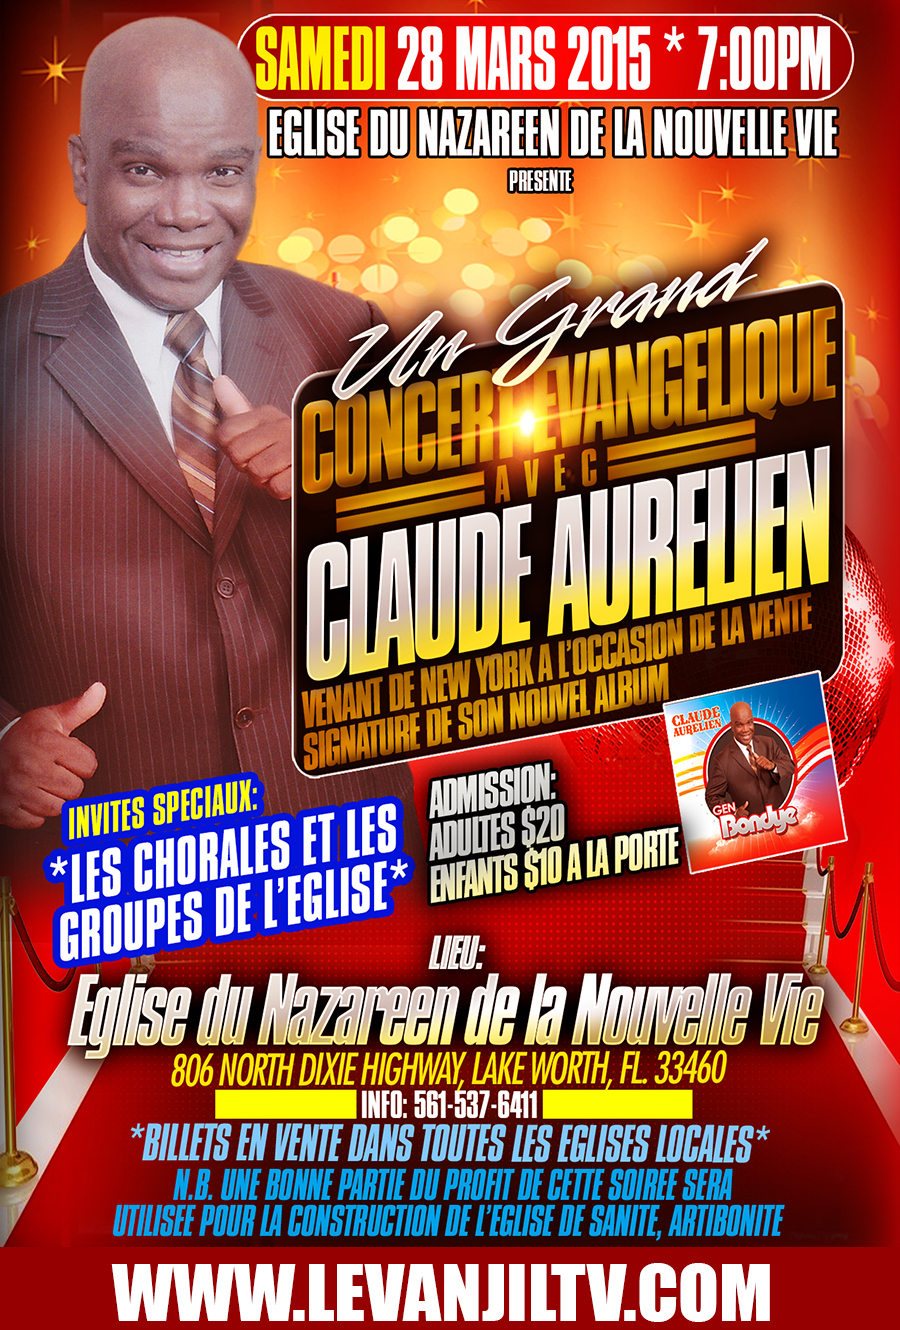 CLAUDEAURELIENLAKEWORTHEVENT2015